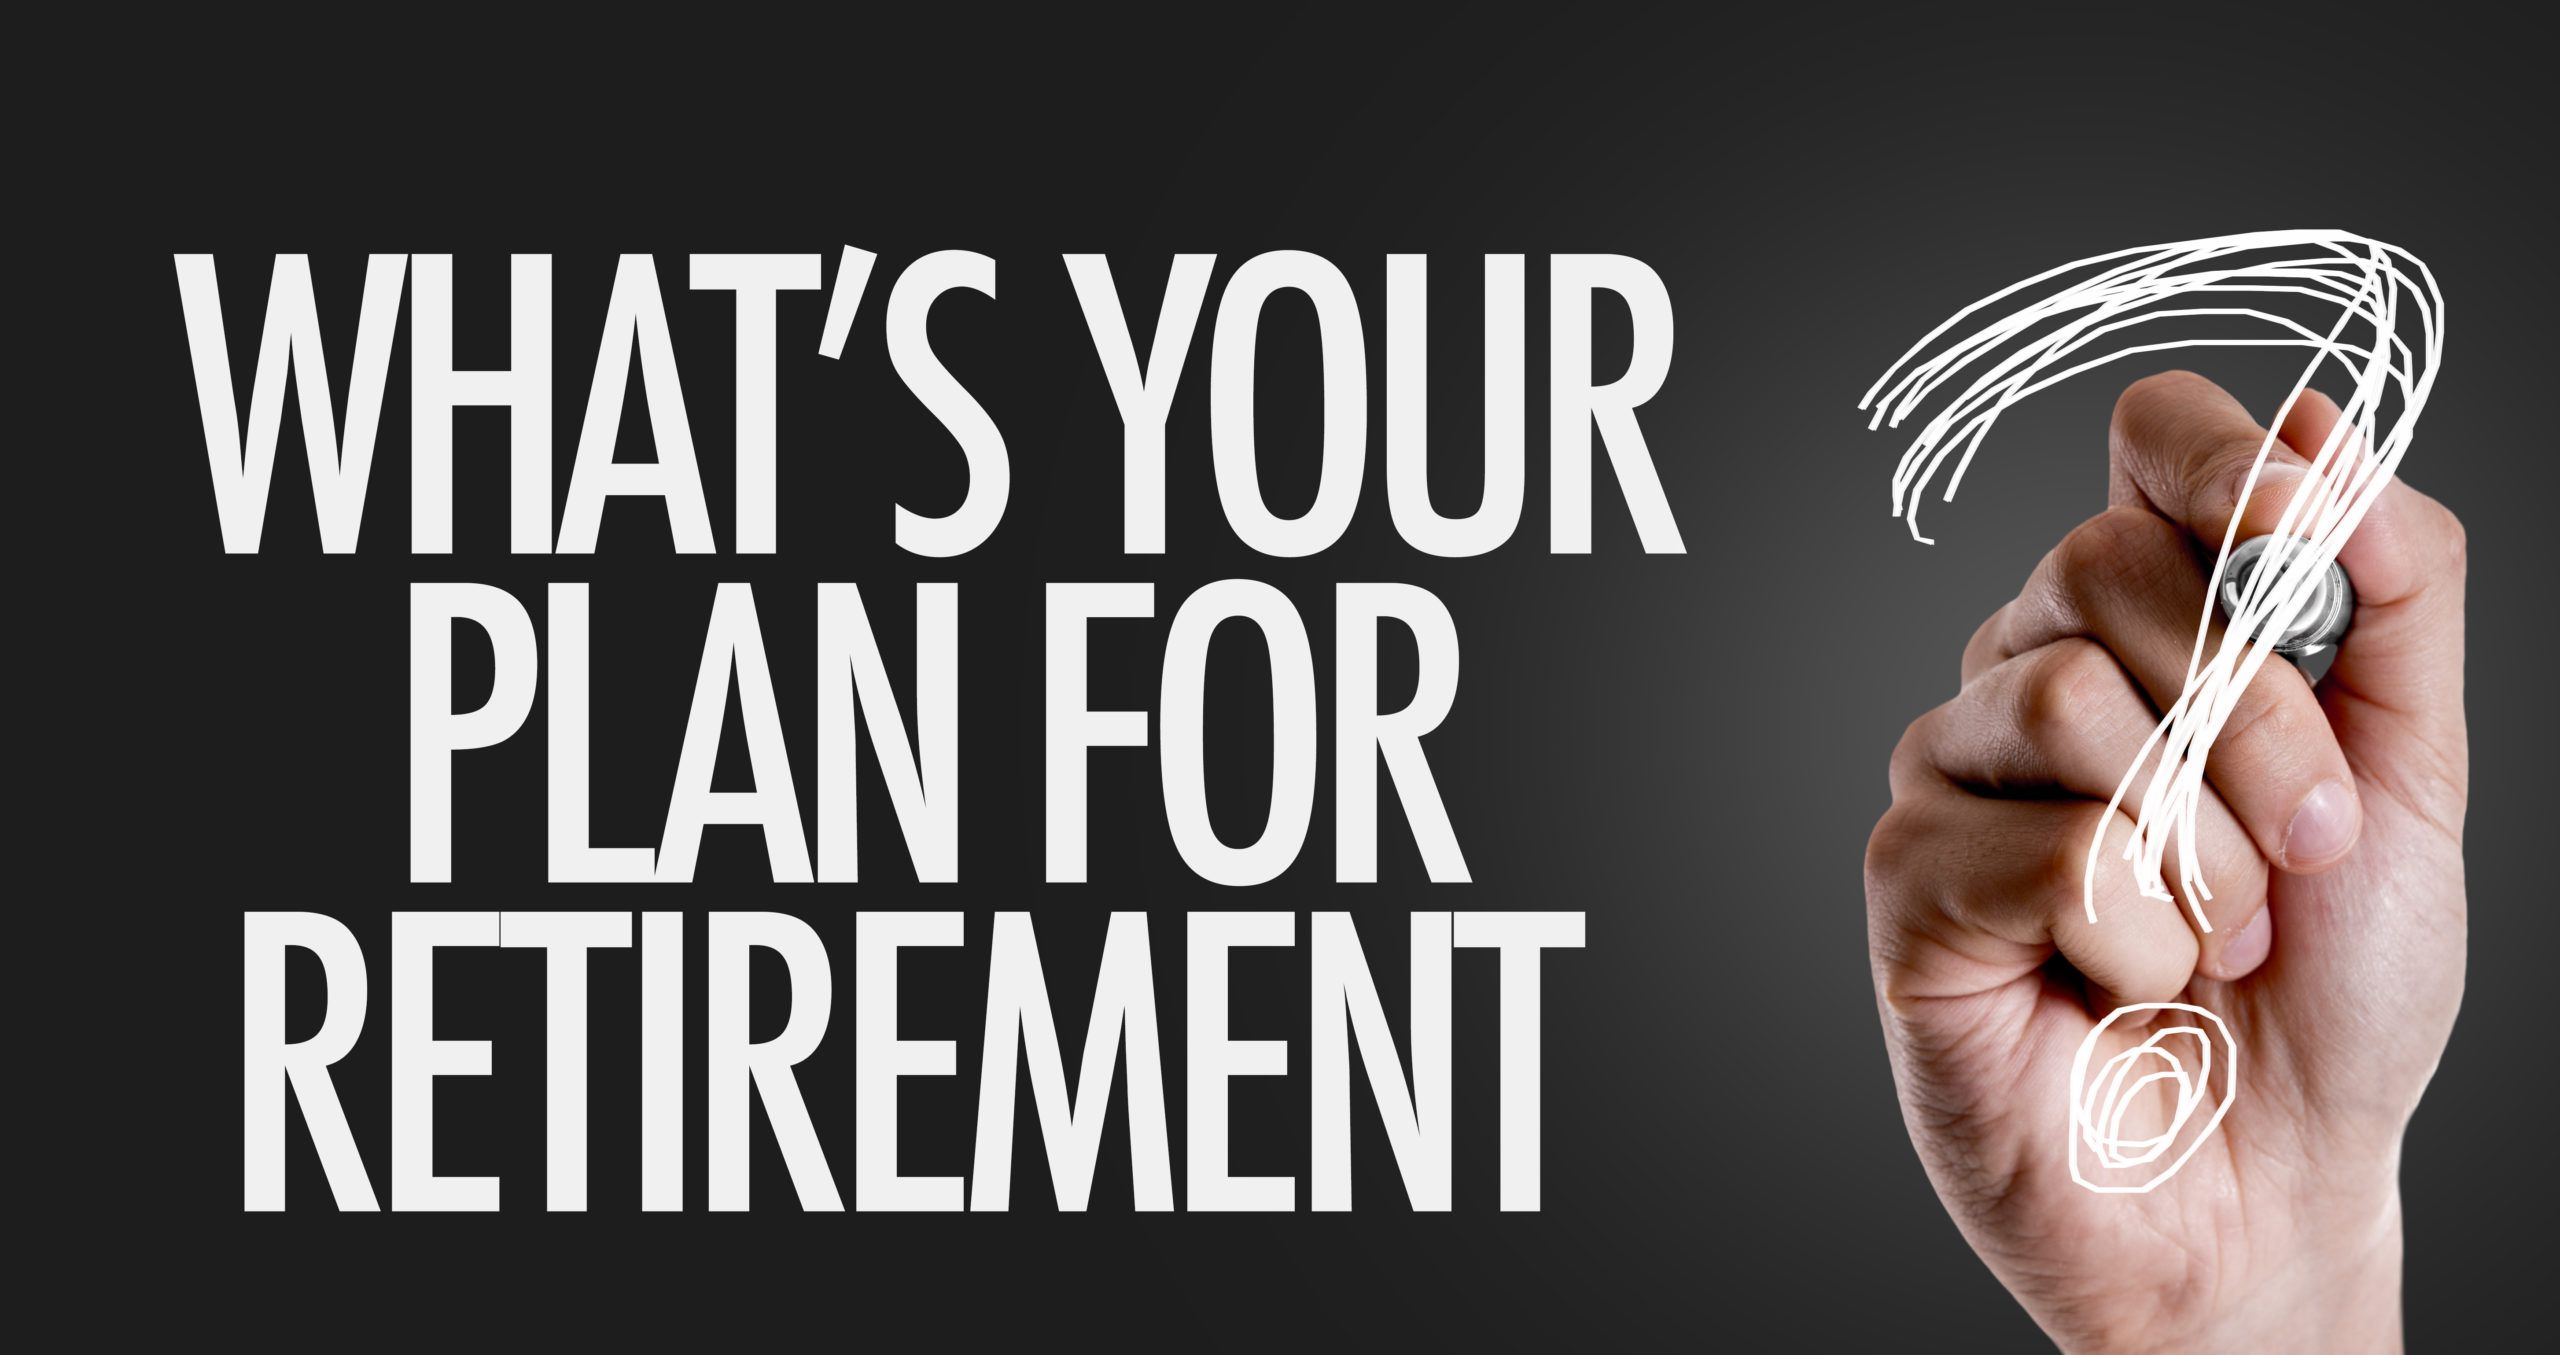 WealthyIQ what's your plan for retirement?